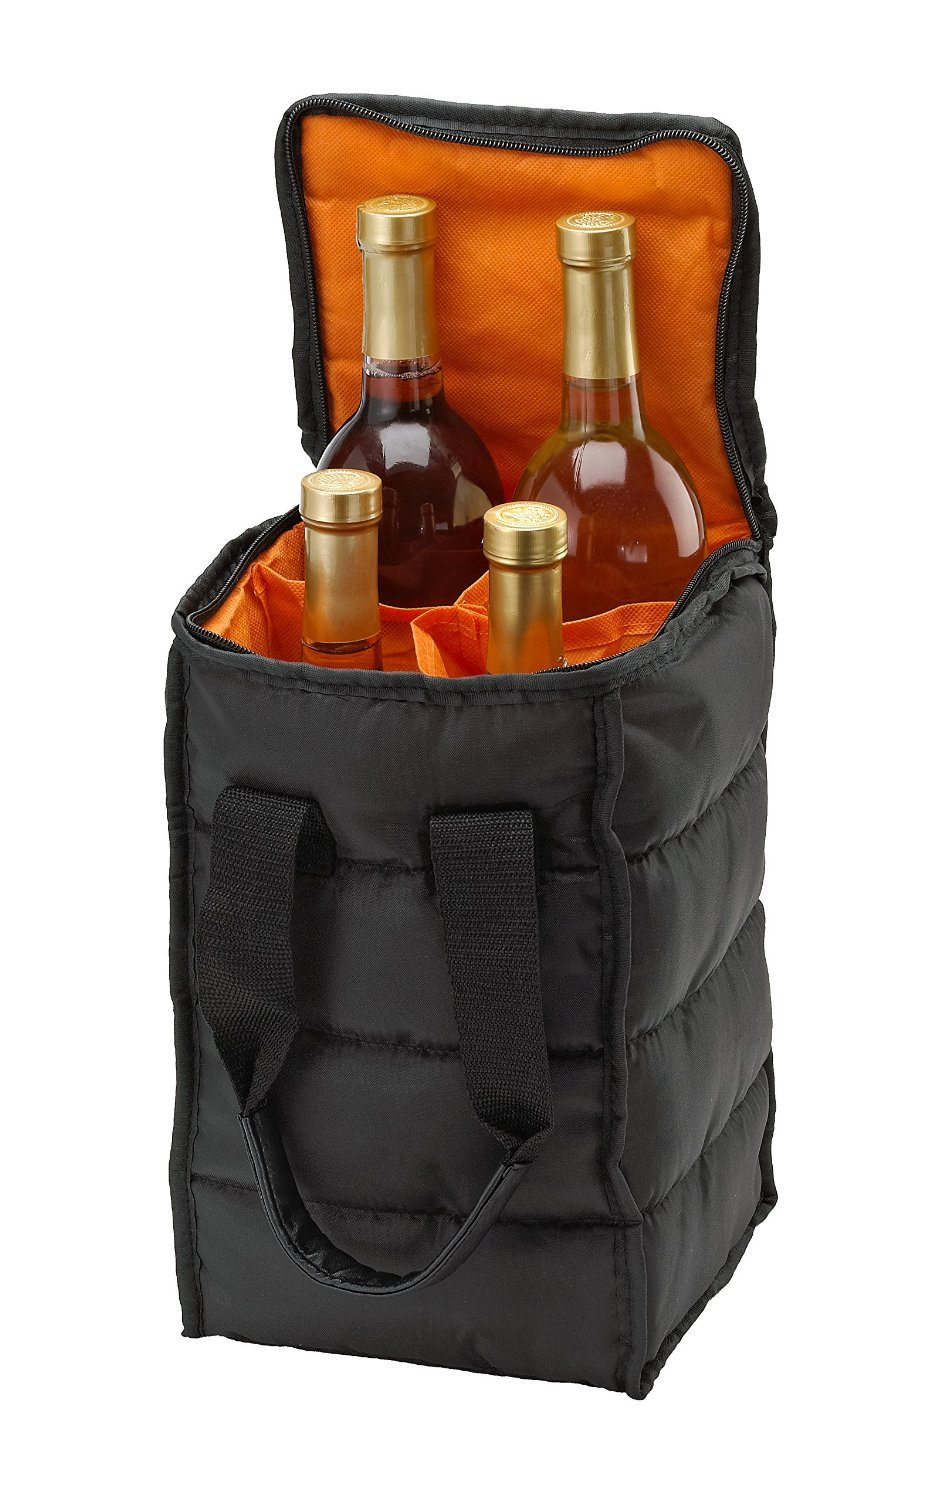 Wine Carrier Tote Bag - 2 Bottle Pockets - Attractive wine bag with thick external padding, zipper and easy to carry handles. The wine tote bag is perfect for travel, picnics or a day at the beach. 5176